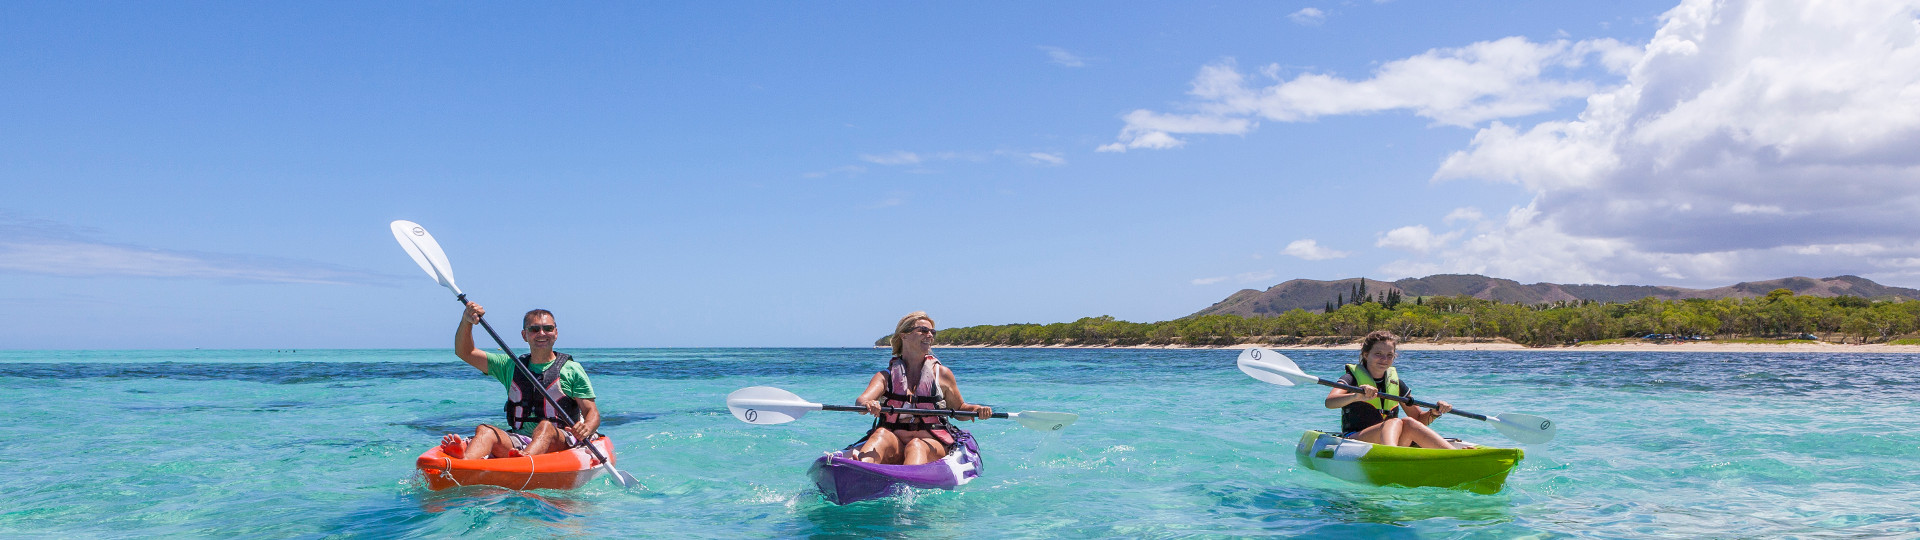 Caledonian culture : canoe kayak activity on the New Caledonia lagoon